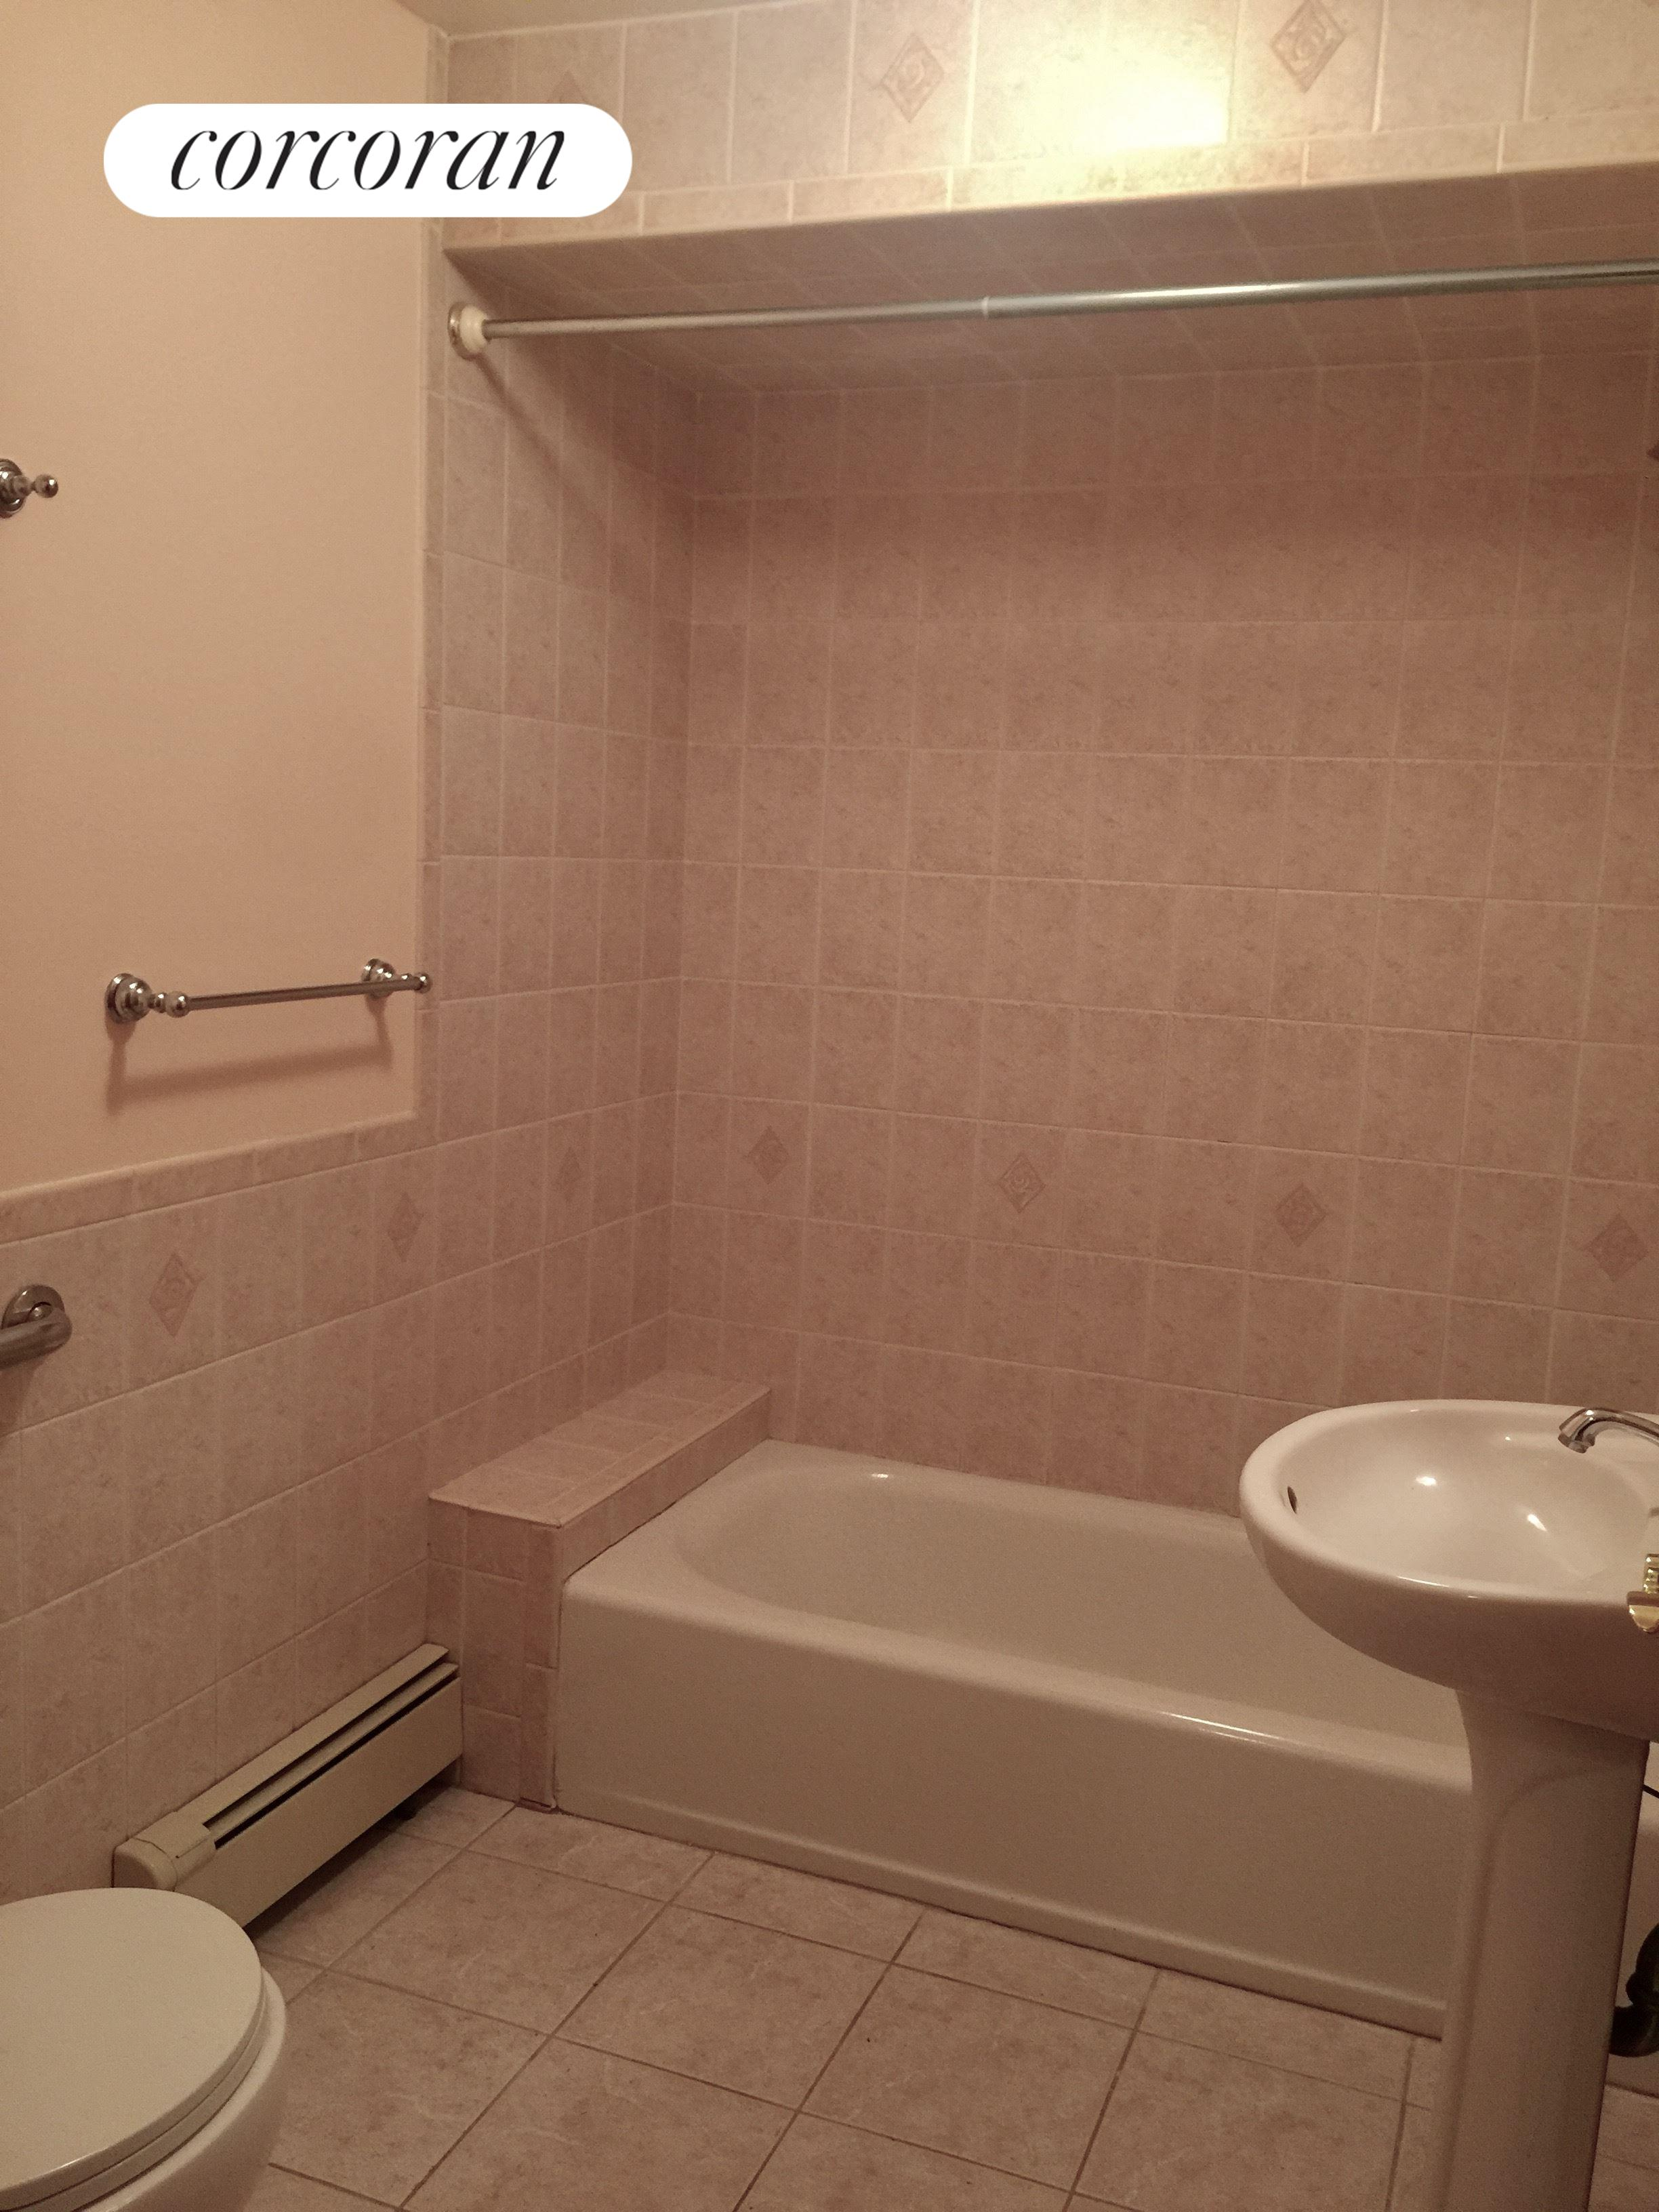 Corcoran Prospect Avenue Apt Garden Park Slope Rentals - Rooms for rent in nyc with private bathroom